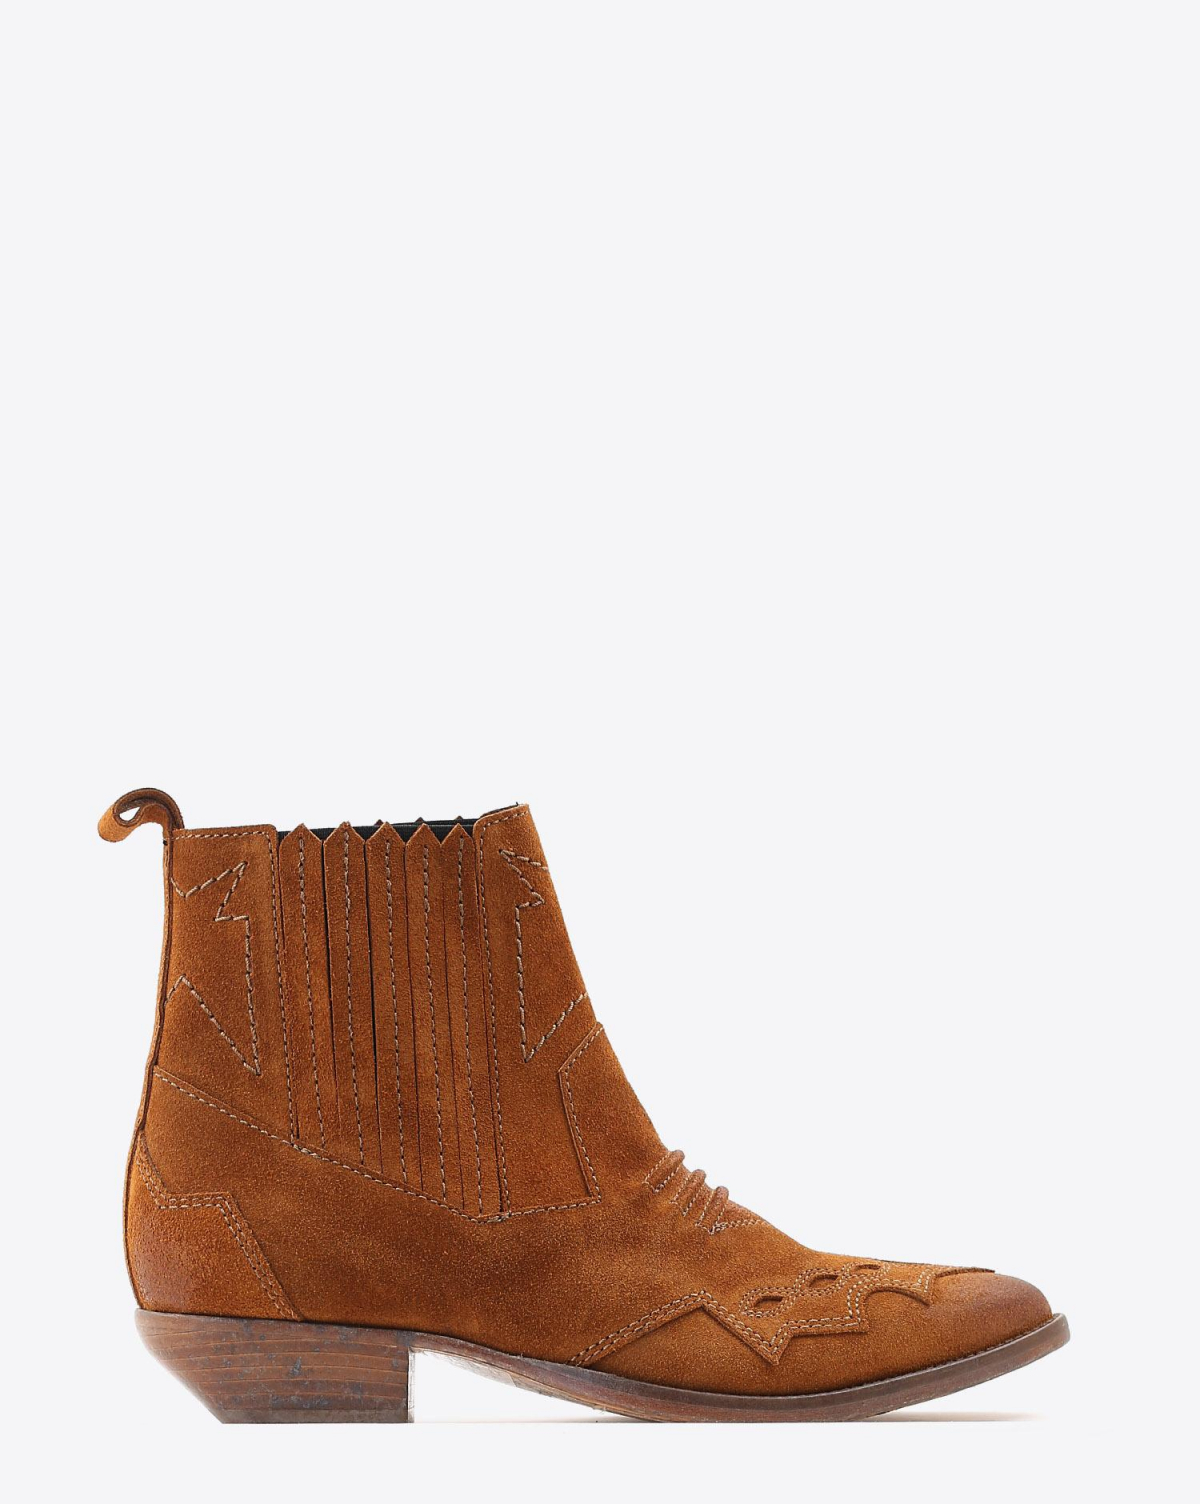 Roseanna Chaussures Boots Santiags TUCSON - Whisky